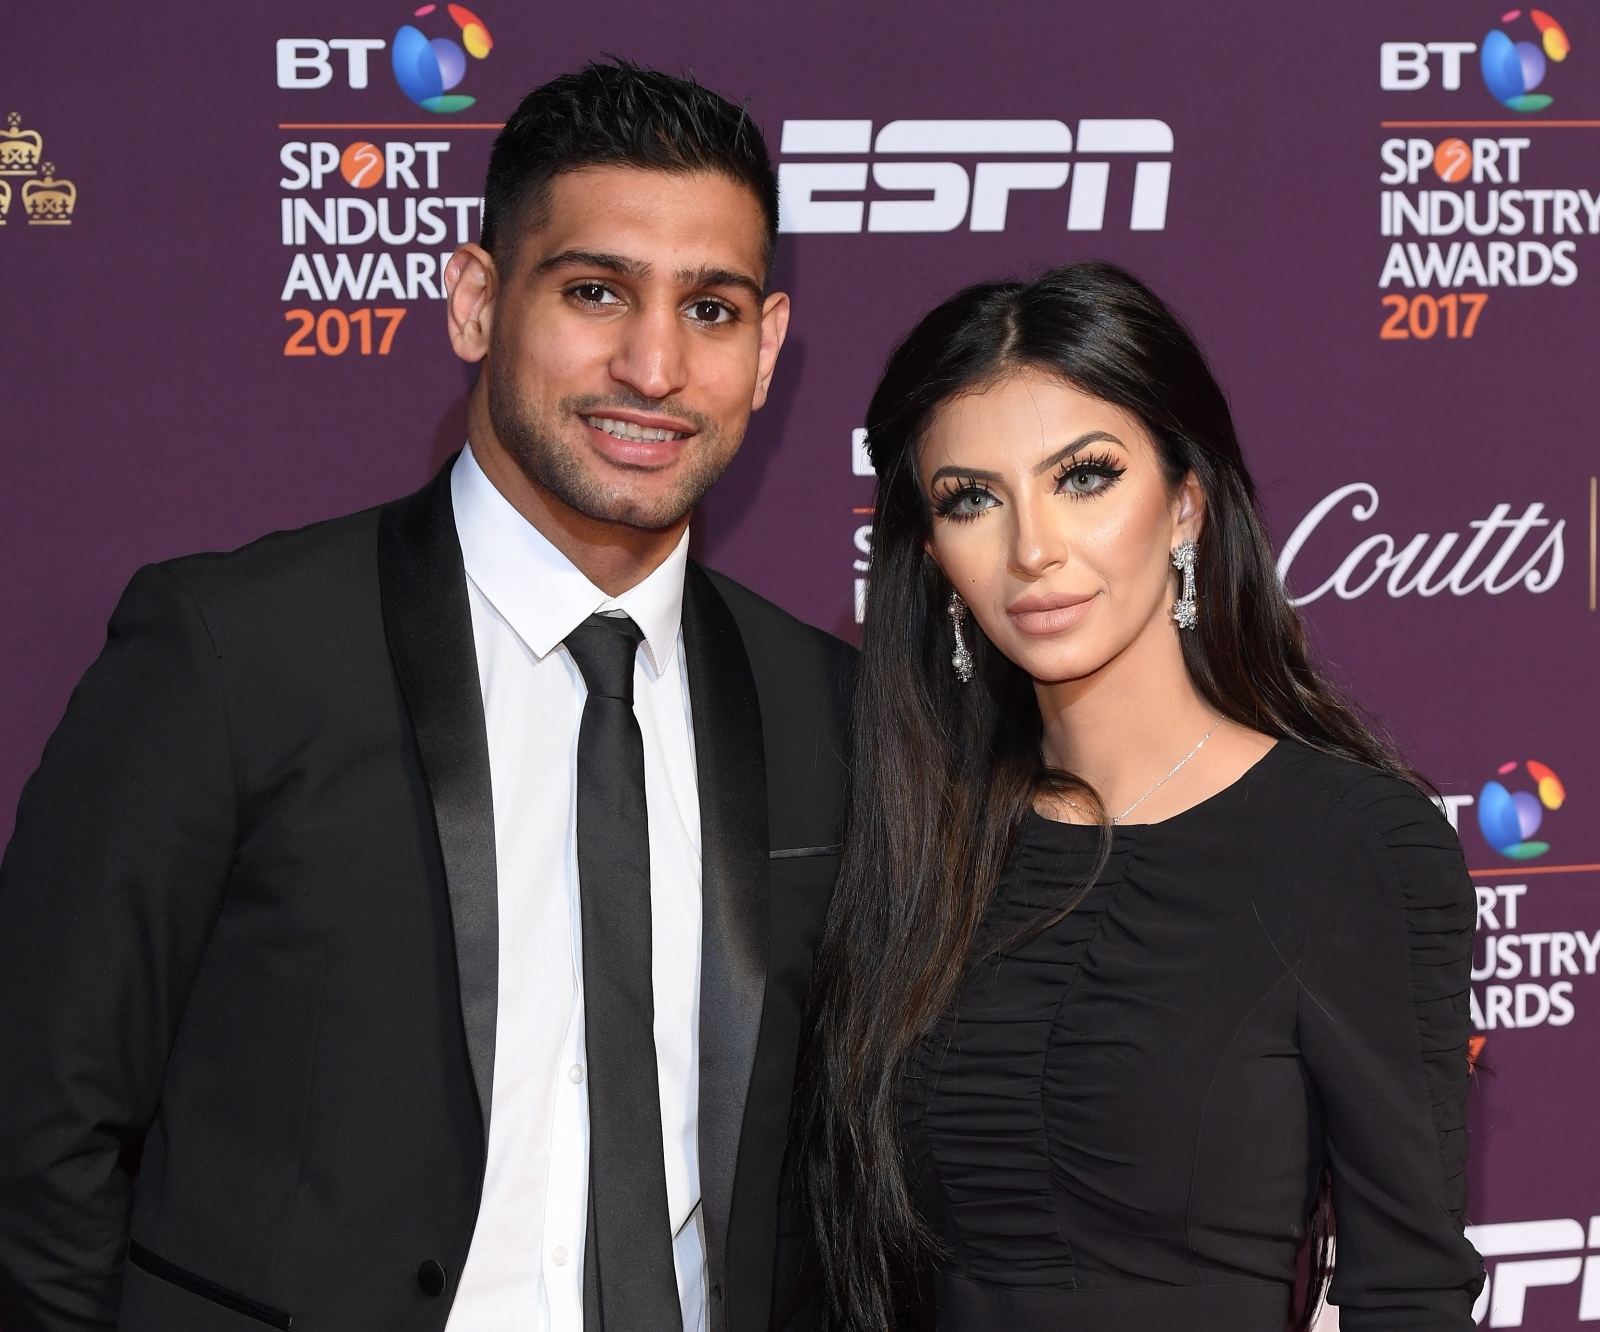 Amir Khan and Faryal Makhdoom